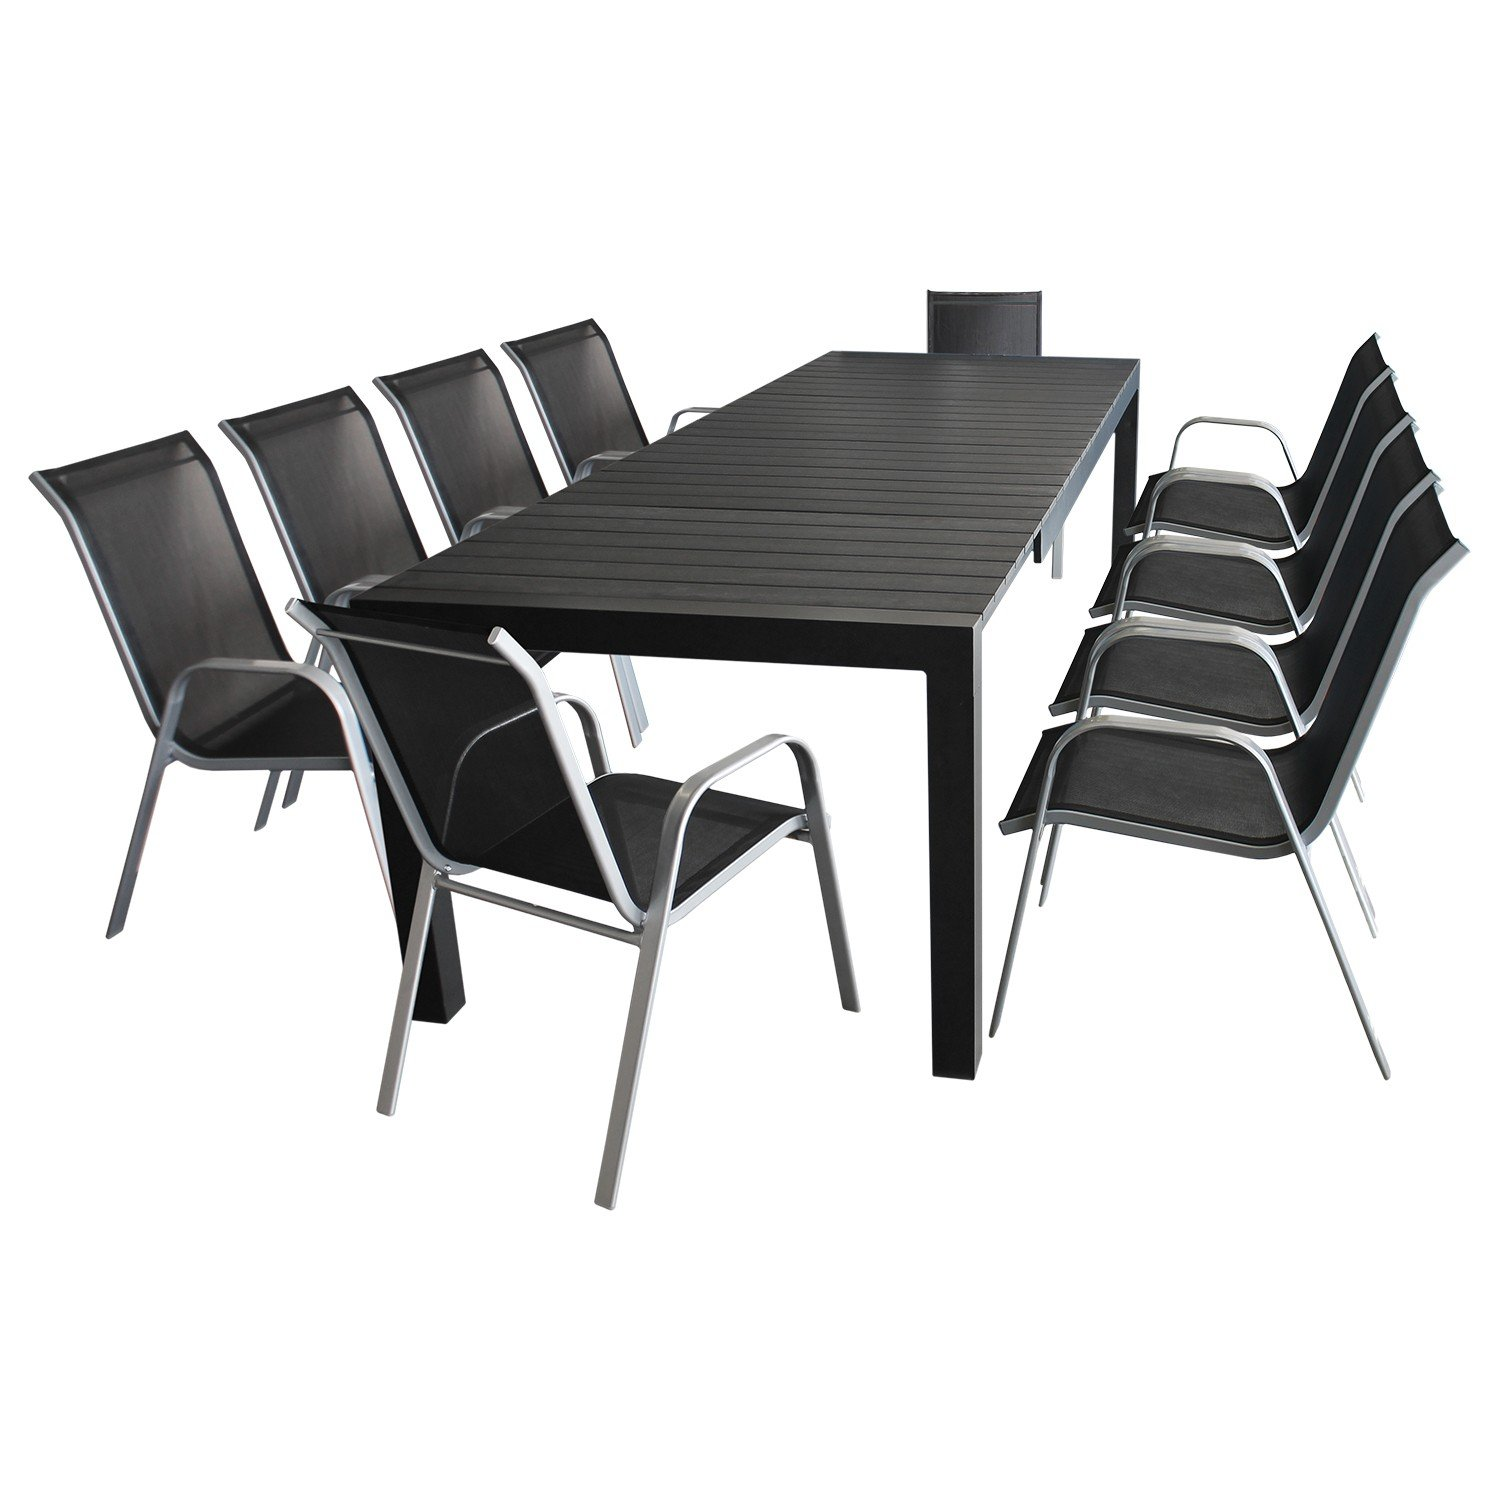 xxl gartenm bel terrassenm bel set sitzgruppe gartengarnitur aluminium ausziehtisch 224 284. Black Bedroom Furniture Sets. Home Design Ideas